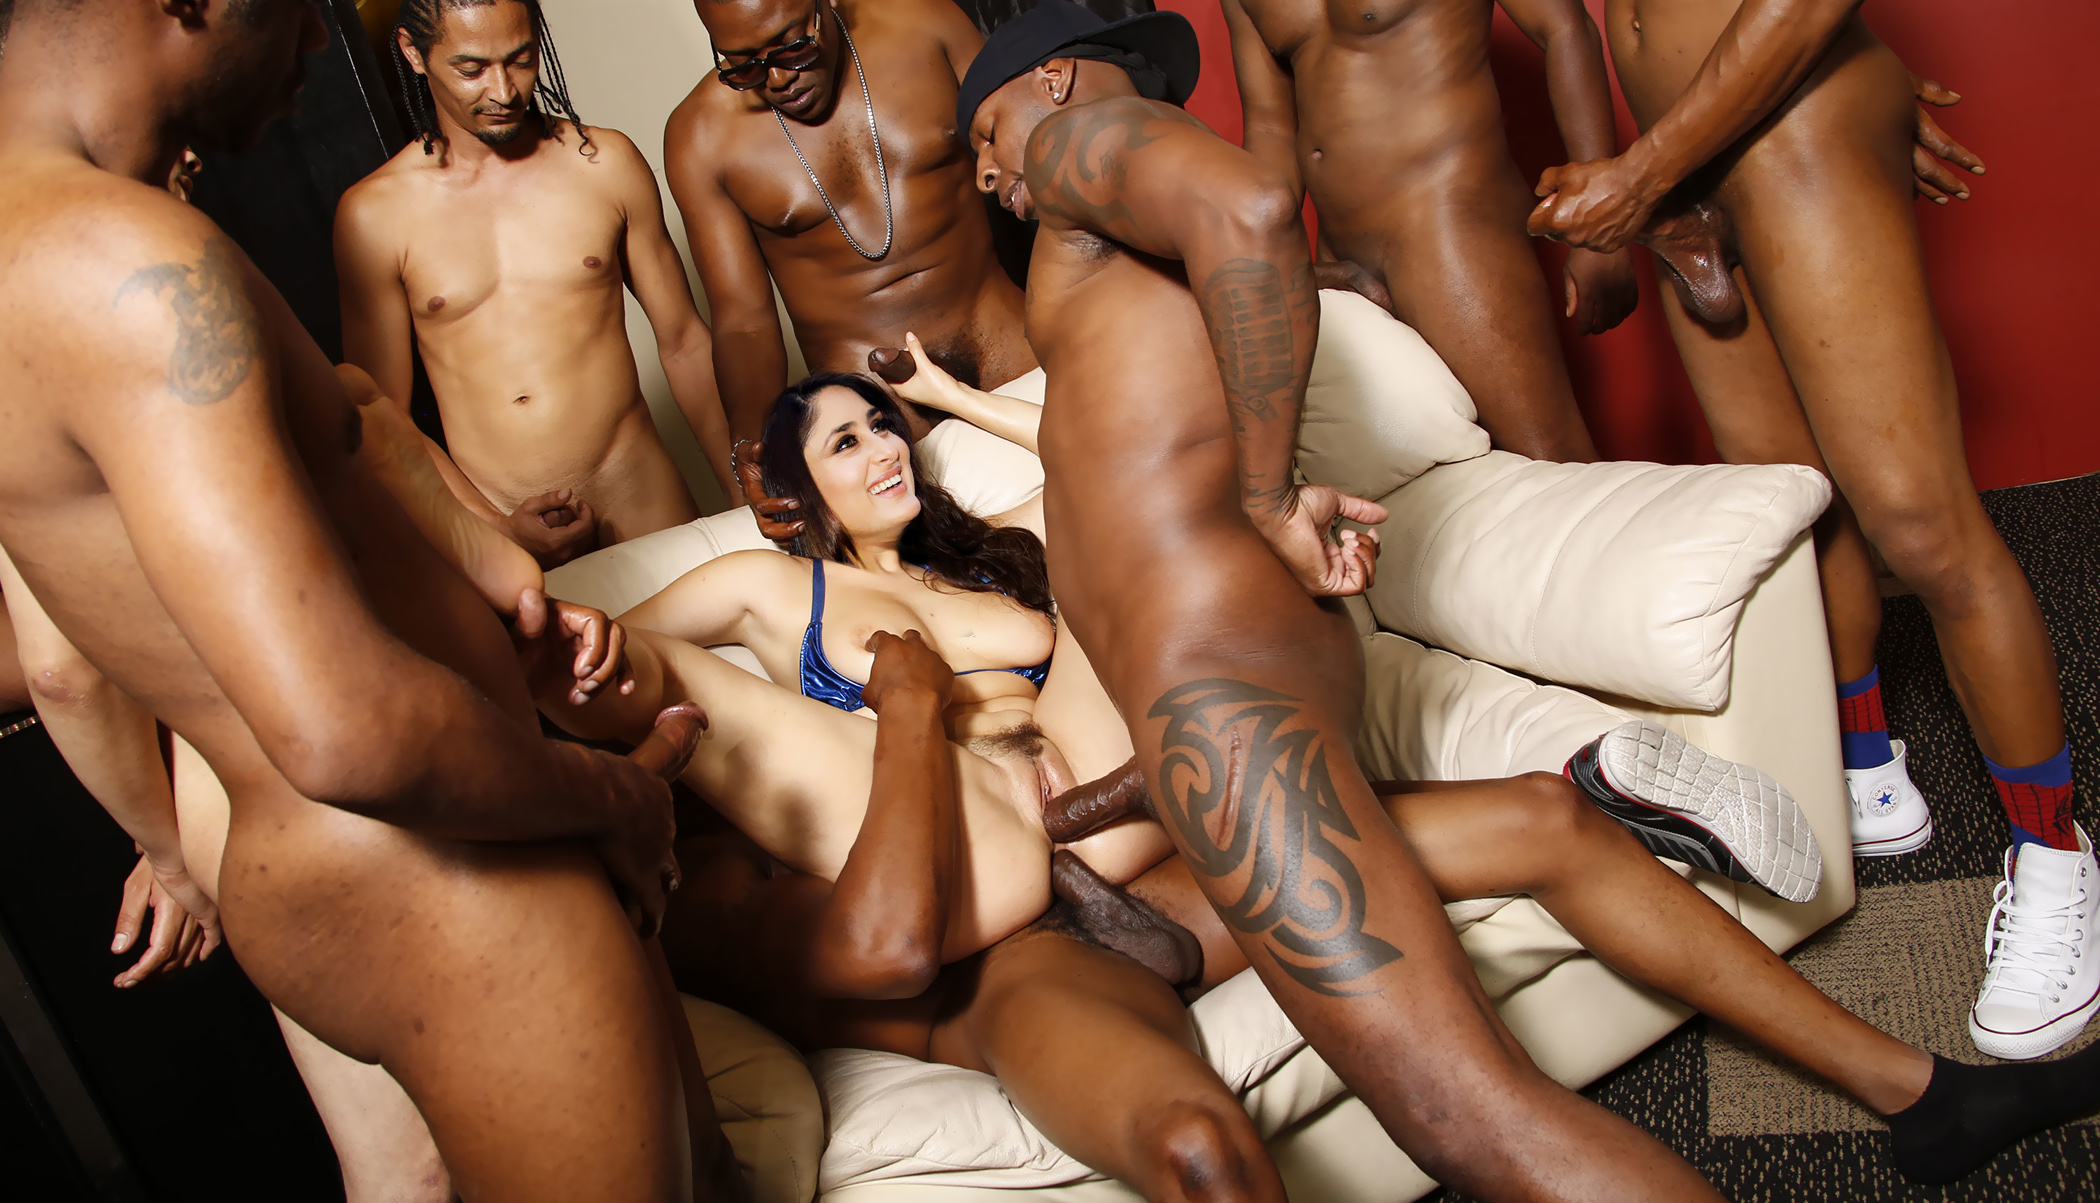 large-gang-bang-video-hot-girls-in-america-nude